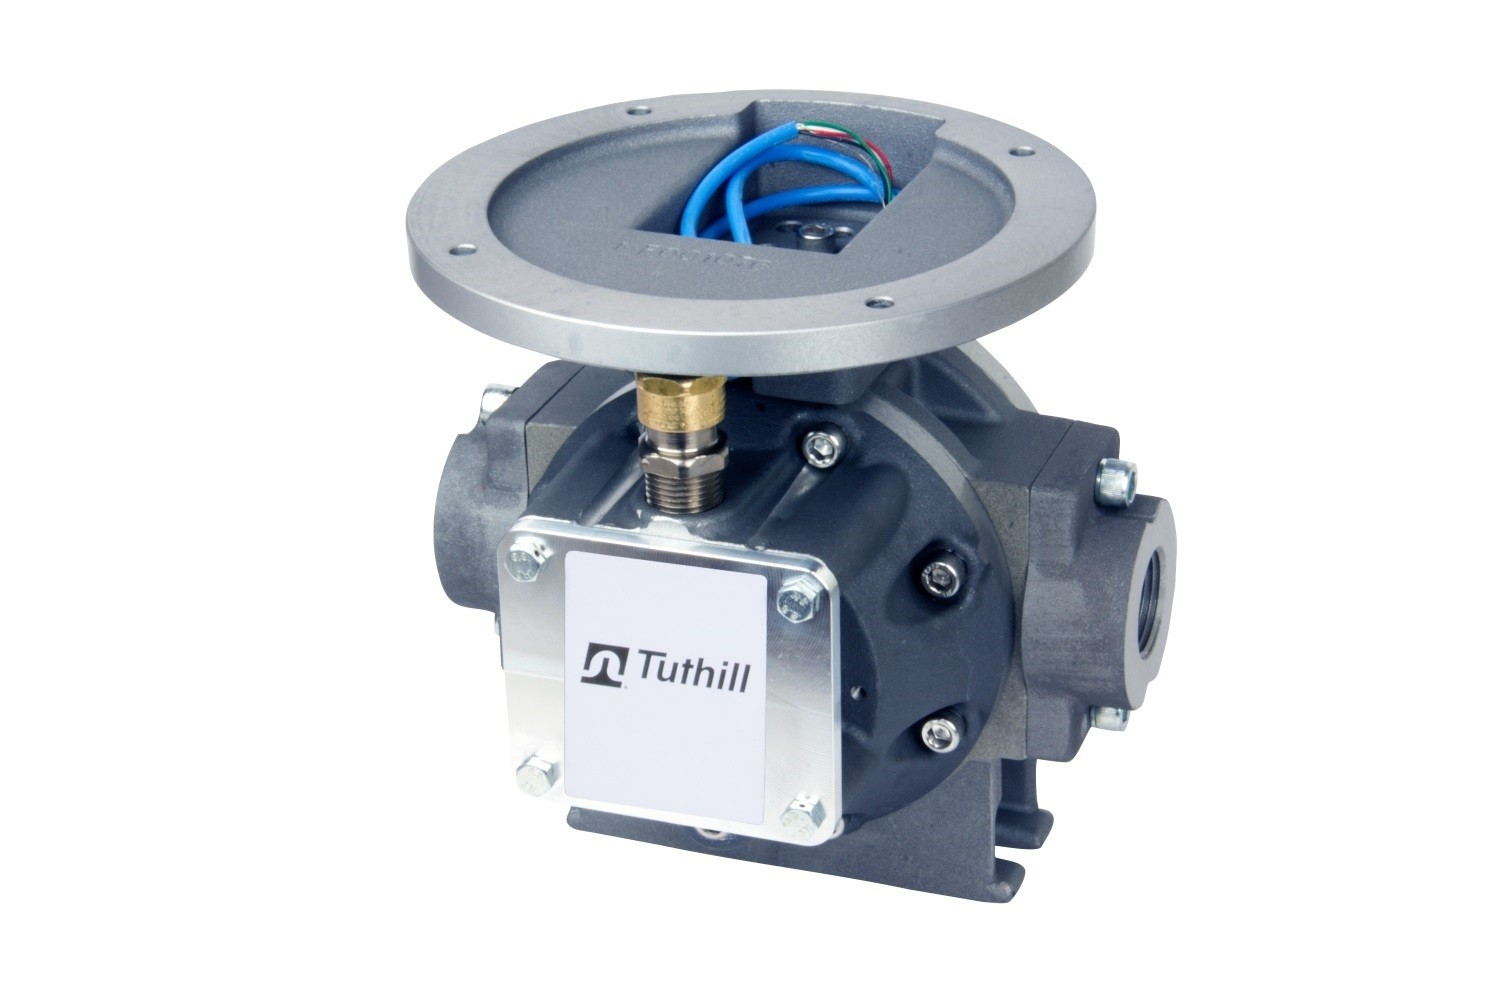 Fill-Rite TS10AF14AATXXXX Electronic Meter with Register Flange